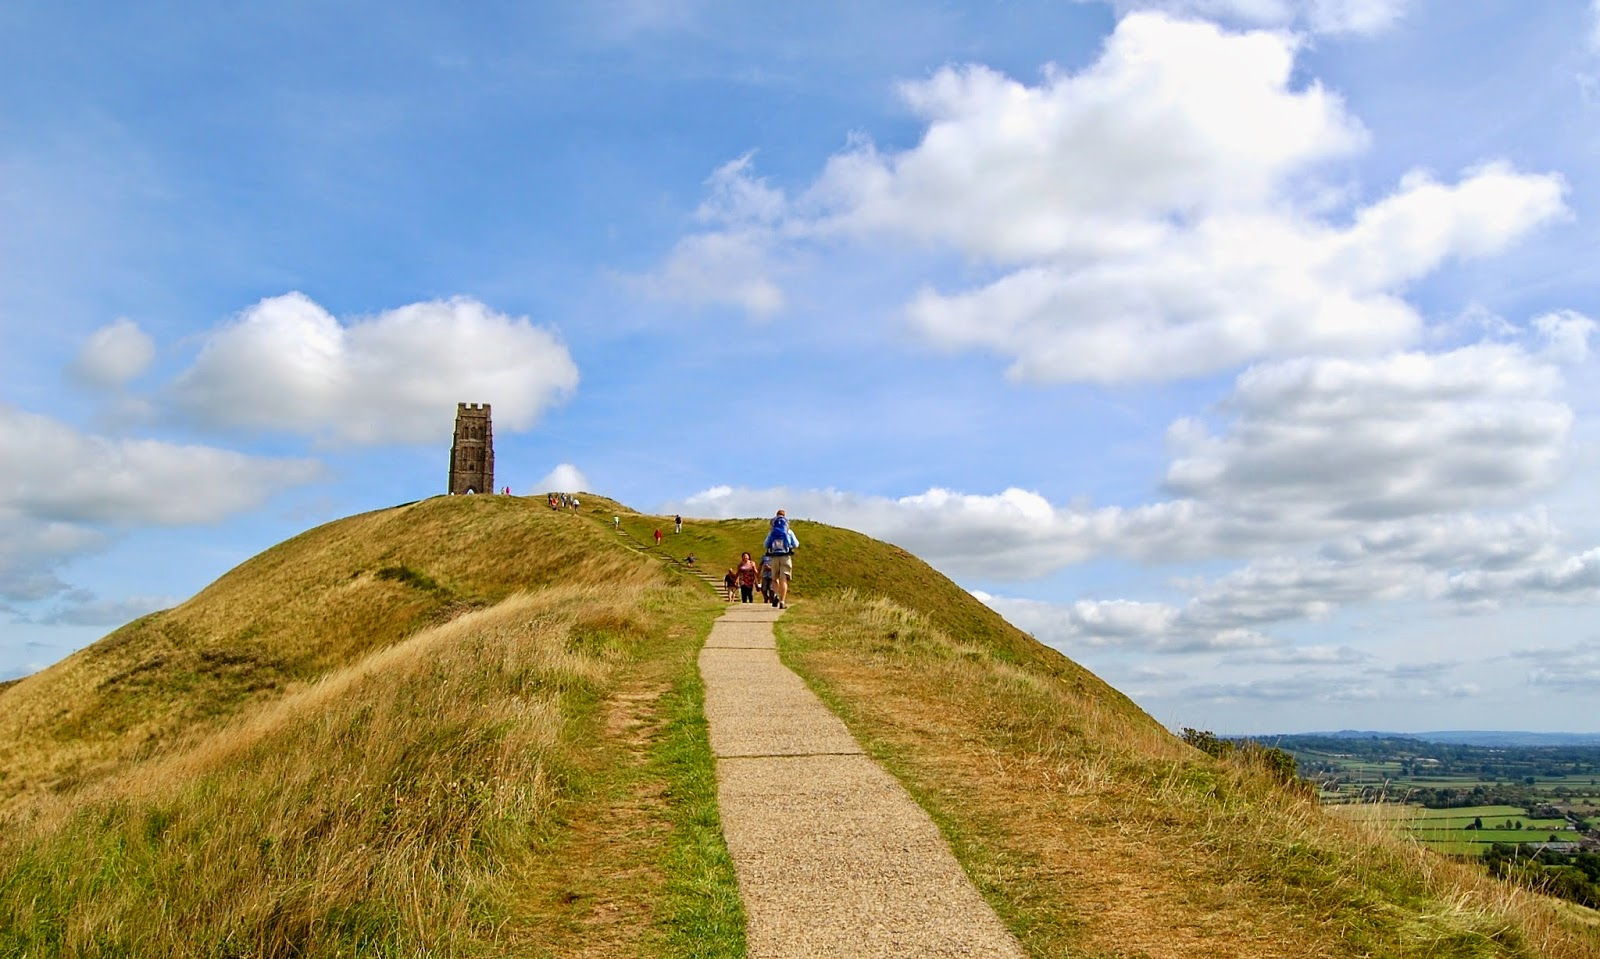 Near the summit of Glastonbury Tor